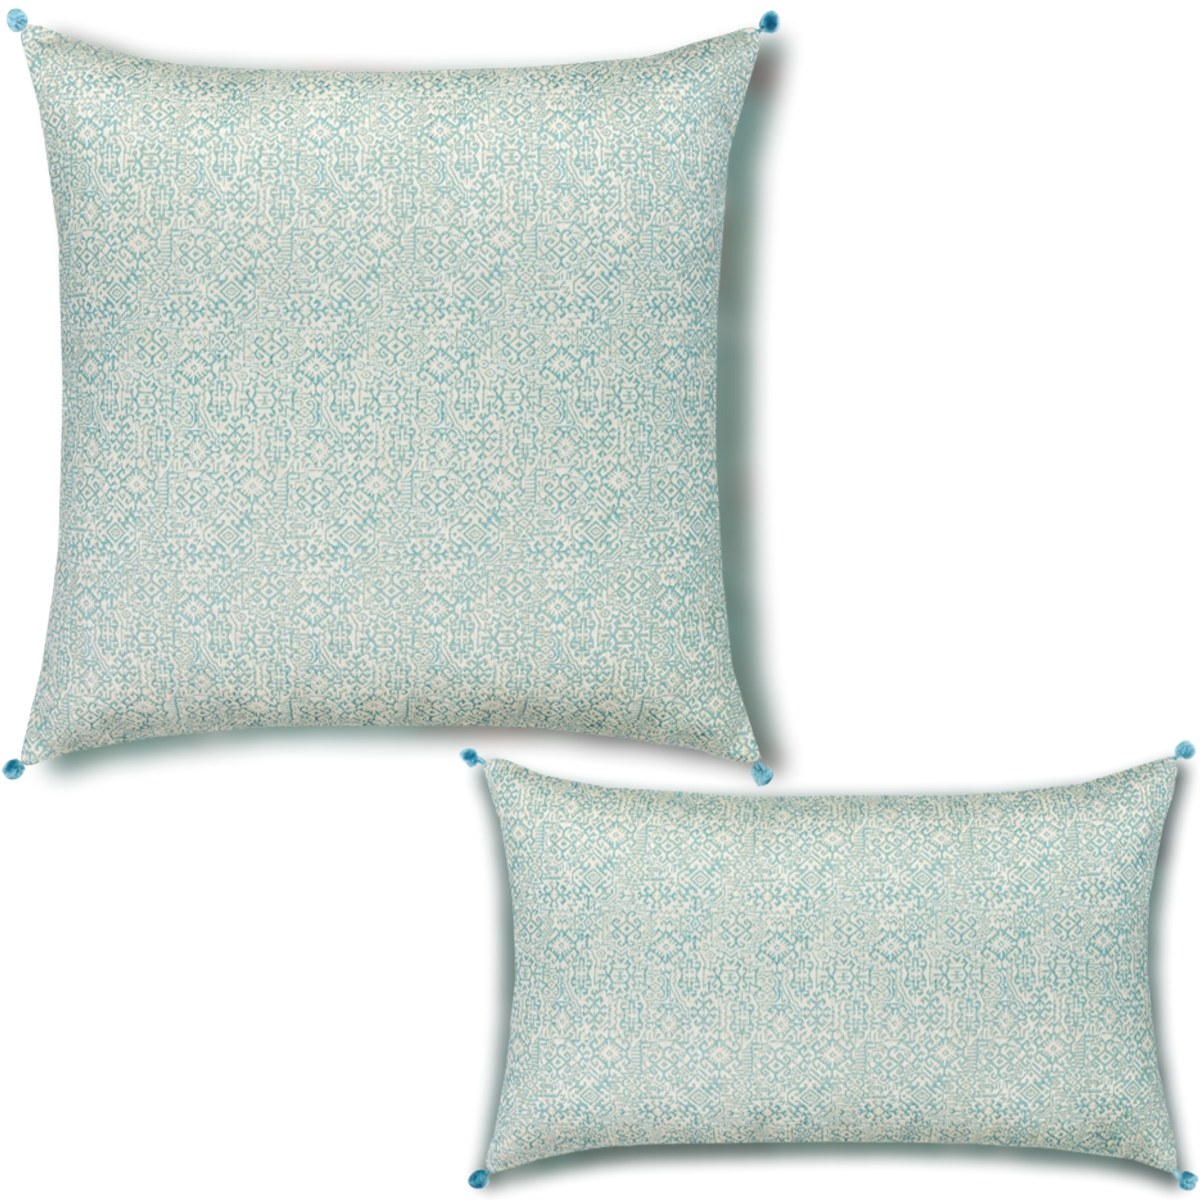 inca-tile-pillow-set